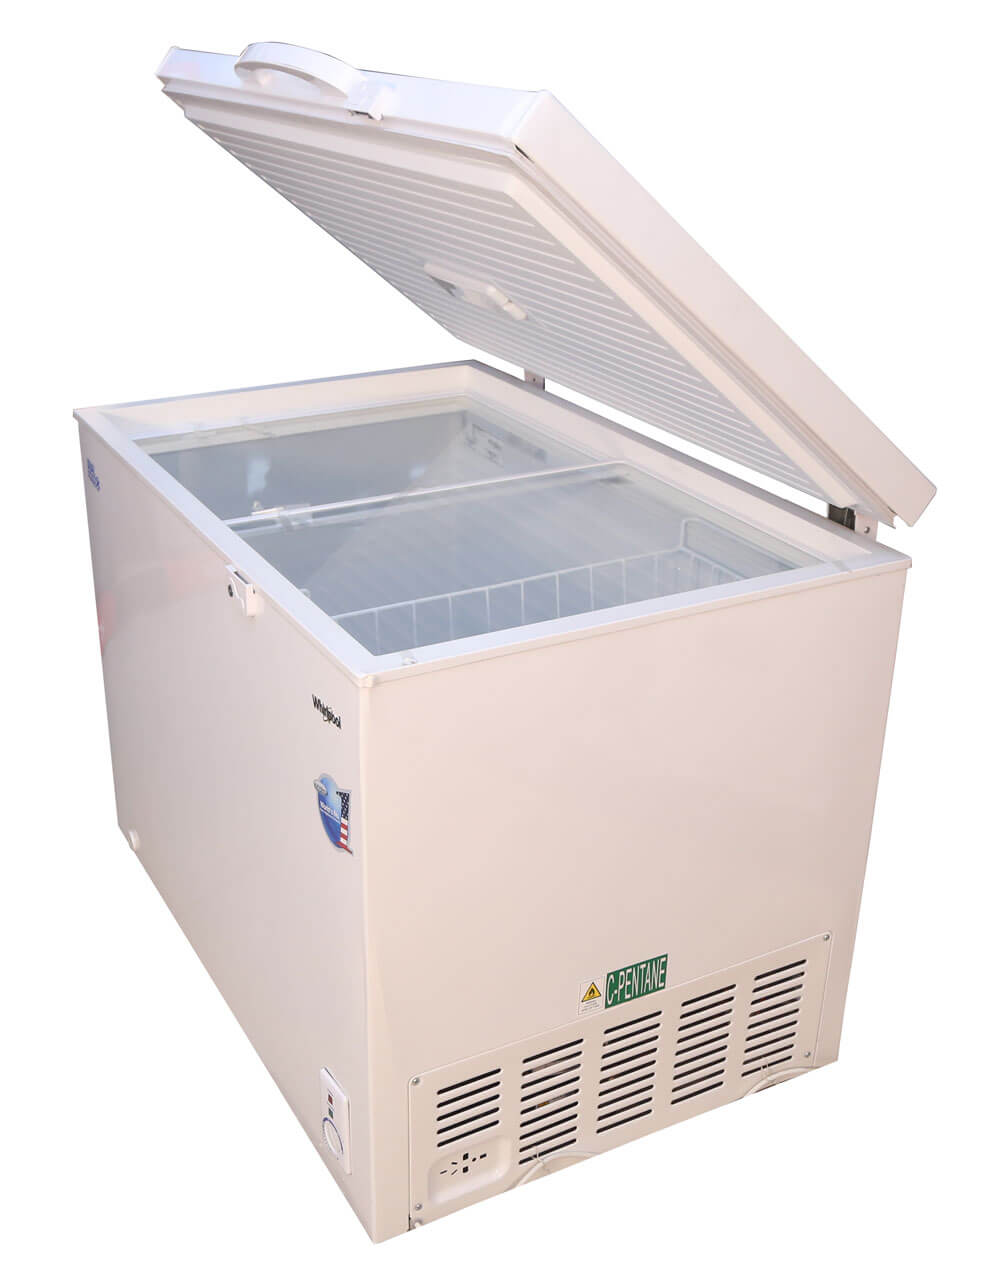 Whirlpool-CF-WC-F300-Deep-Freezer11